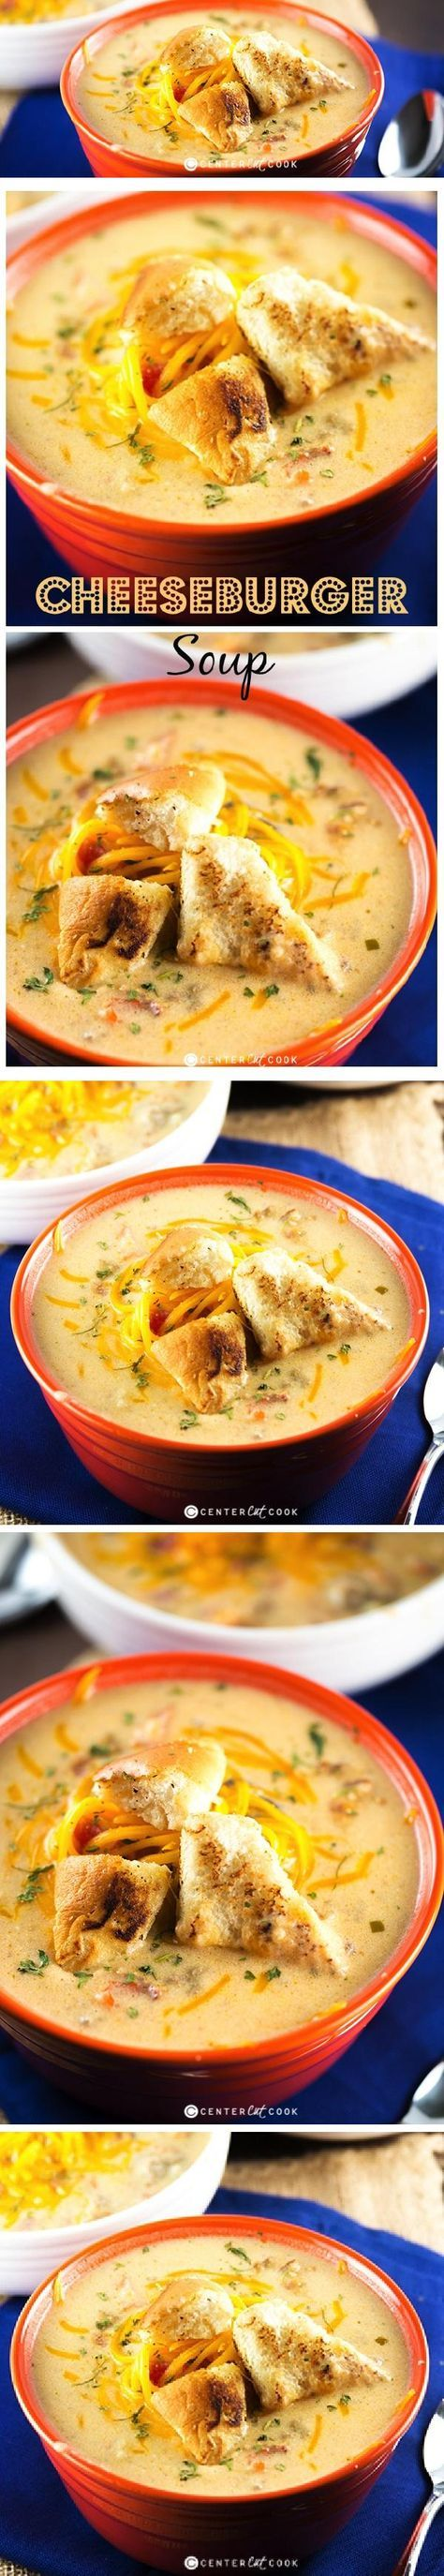 A tasty recipe for Bacon CHEESEBURGER SOUP - a soup filled with hearty cheeseburger flavor, crispy bacon, and plenty of sharp cheddar cheese with instructions to make it in the slow cooker or on the stove.